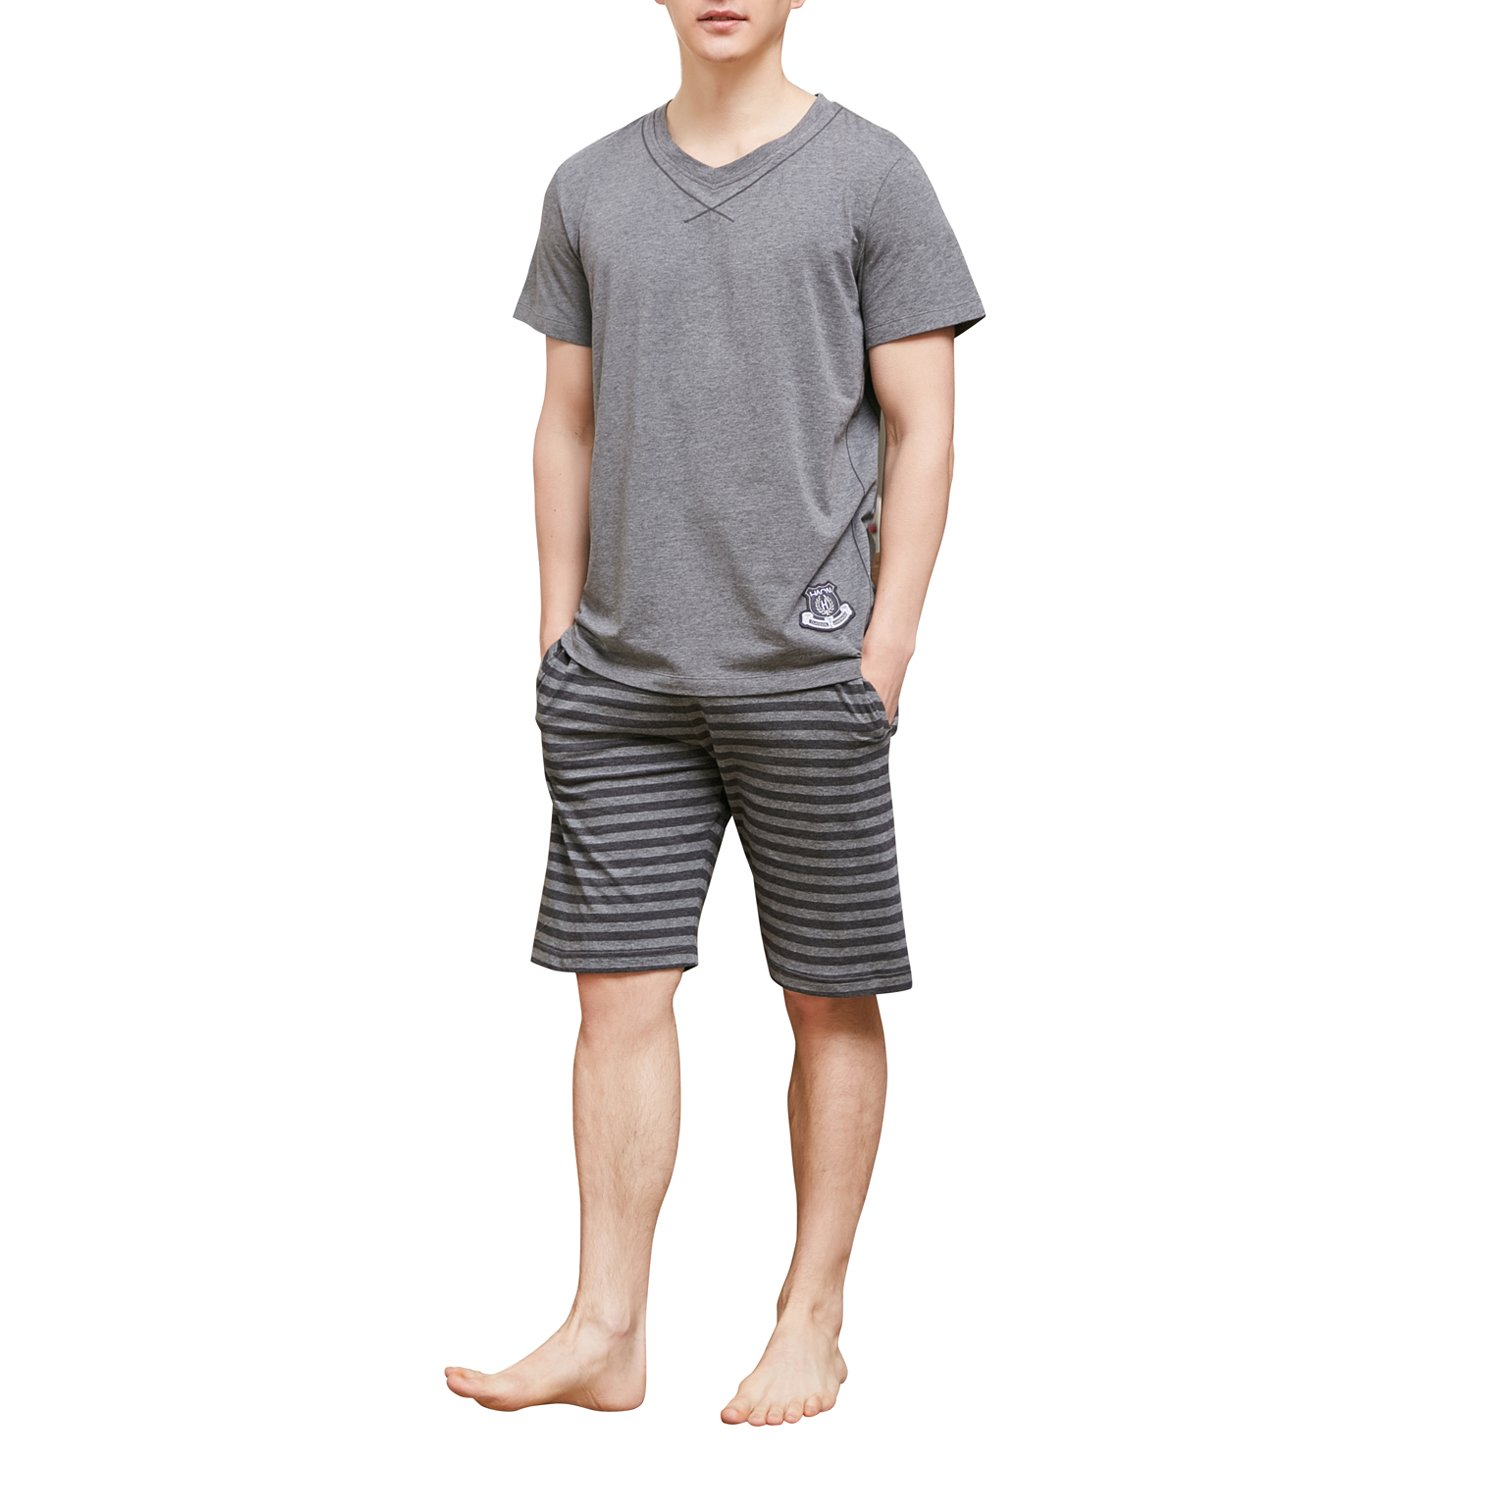 HACAI Men's Pajama Set Soft Cotton Plaid Short Sleeve Summer Sleepwear Grey S